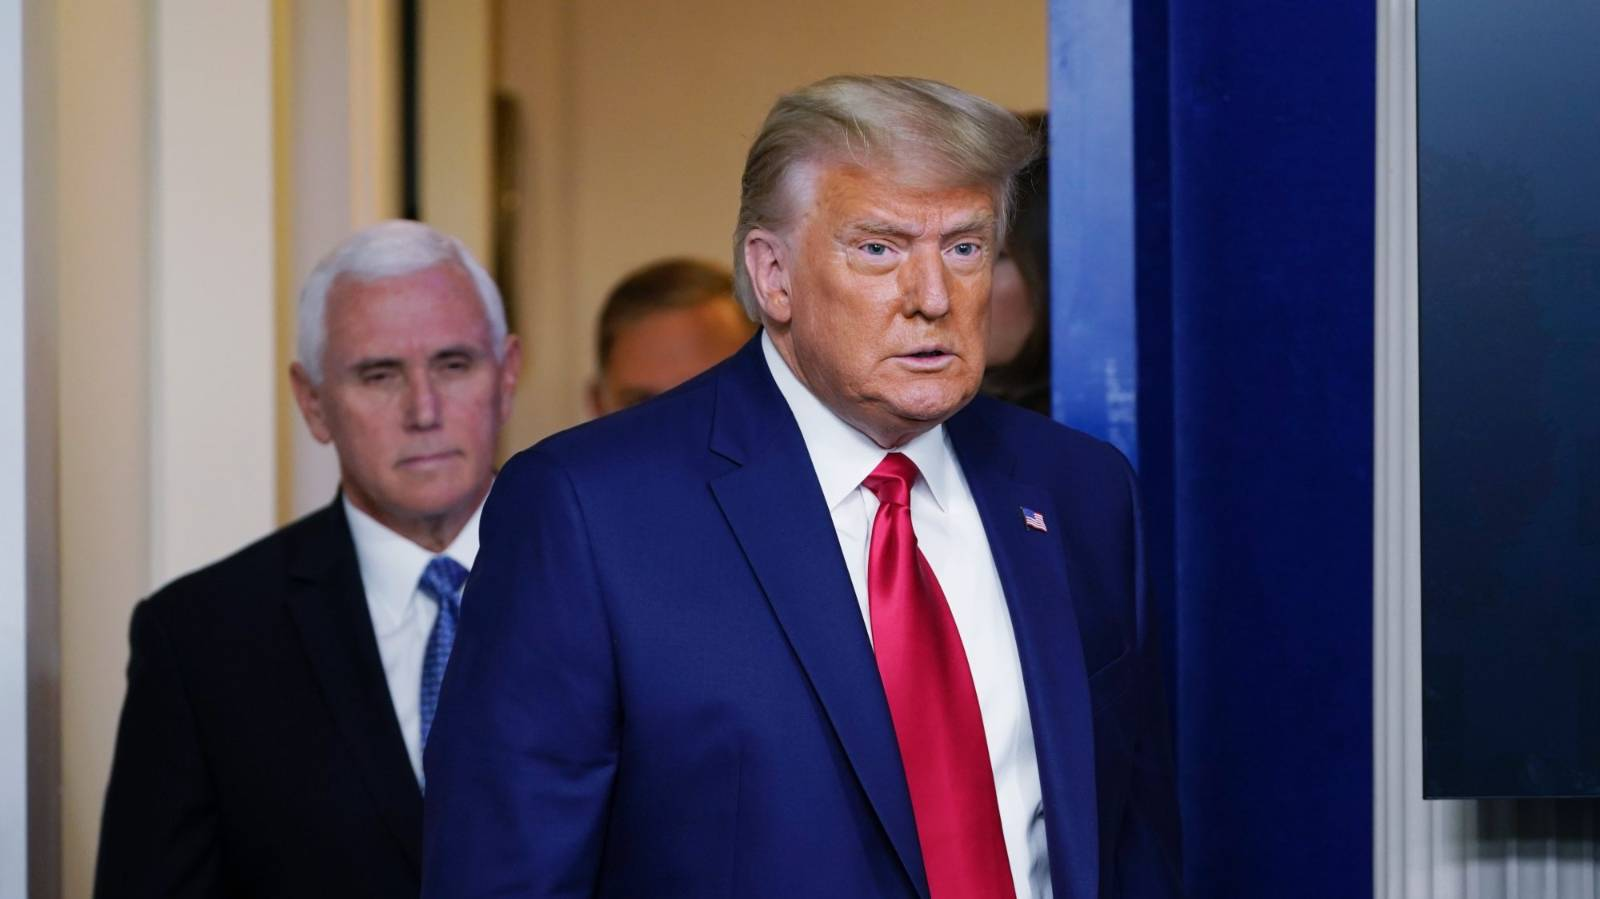 Trump steps out of the White House and into a company in crisis